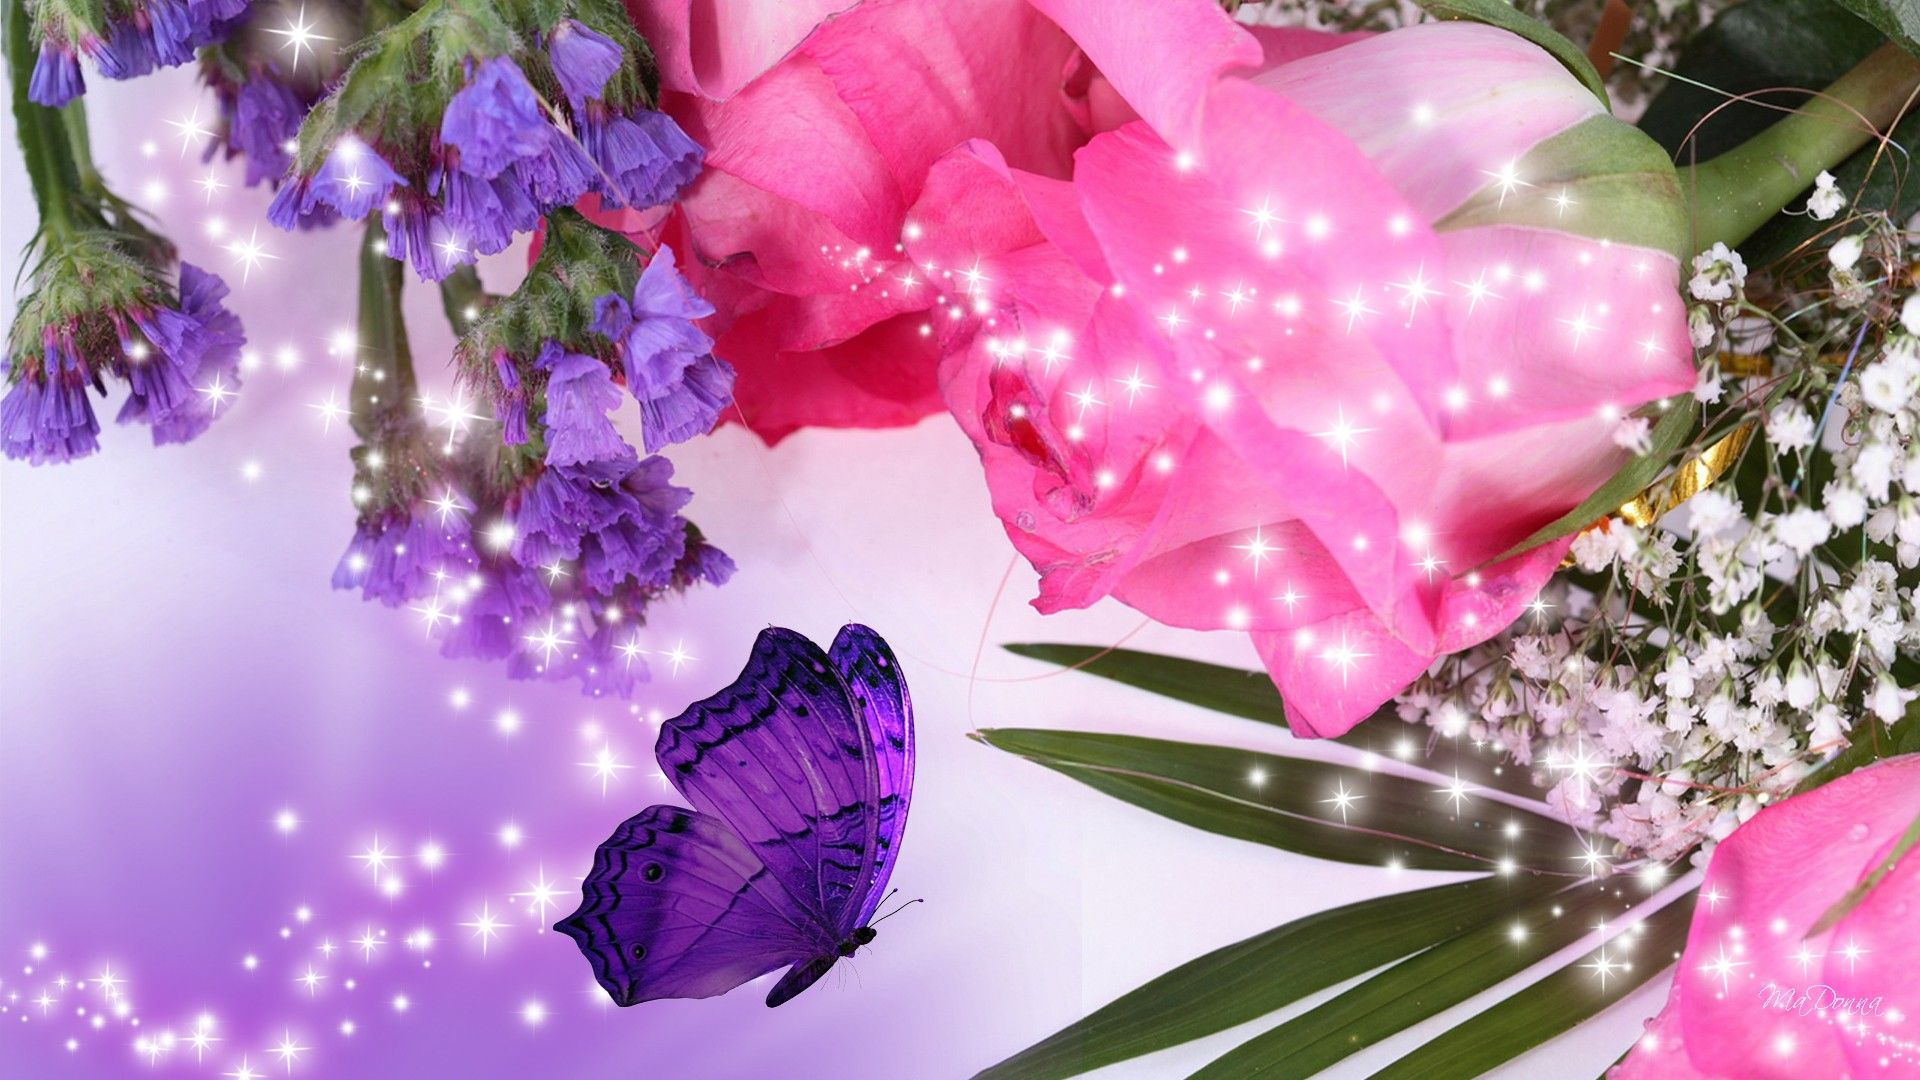 purple flowers desktop wallpaper, purple flower images, new